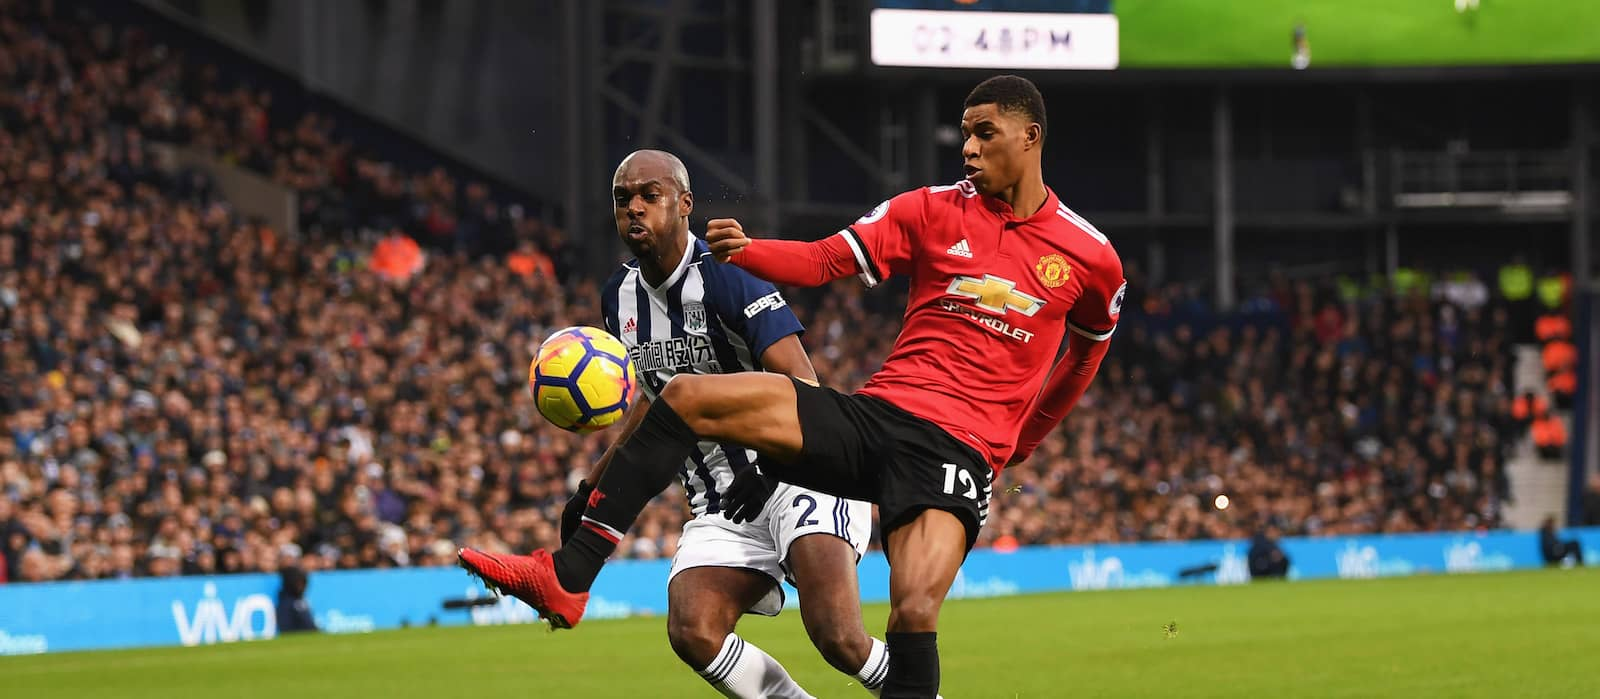 Marcus Rashford delivers ebullient display against West Bromwich Albion